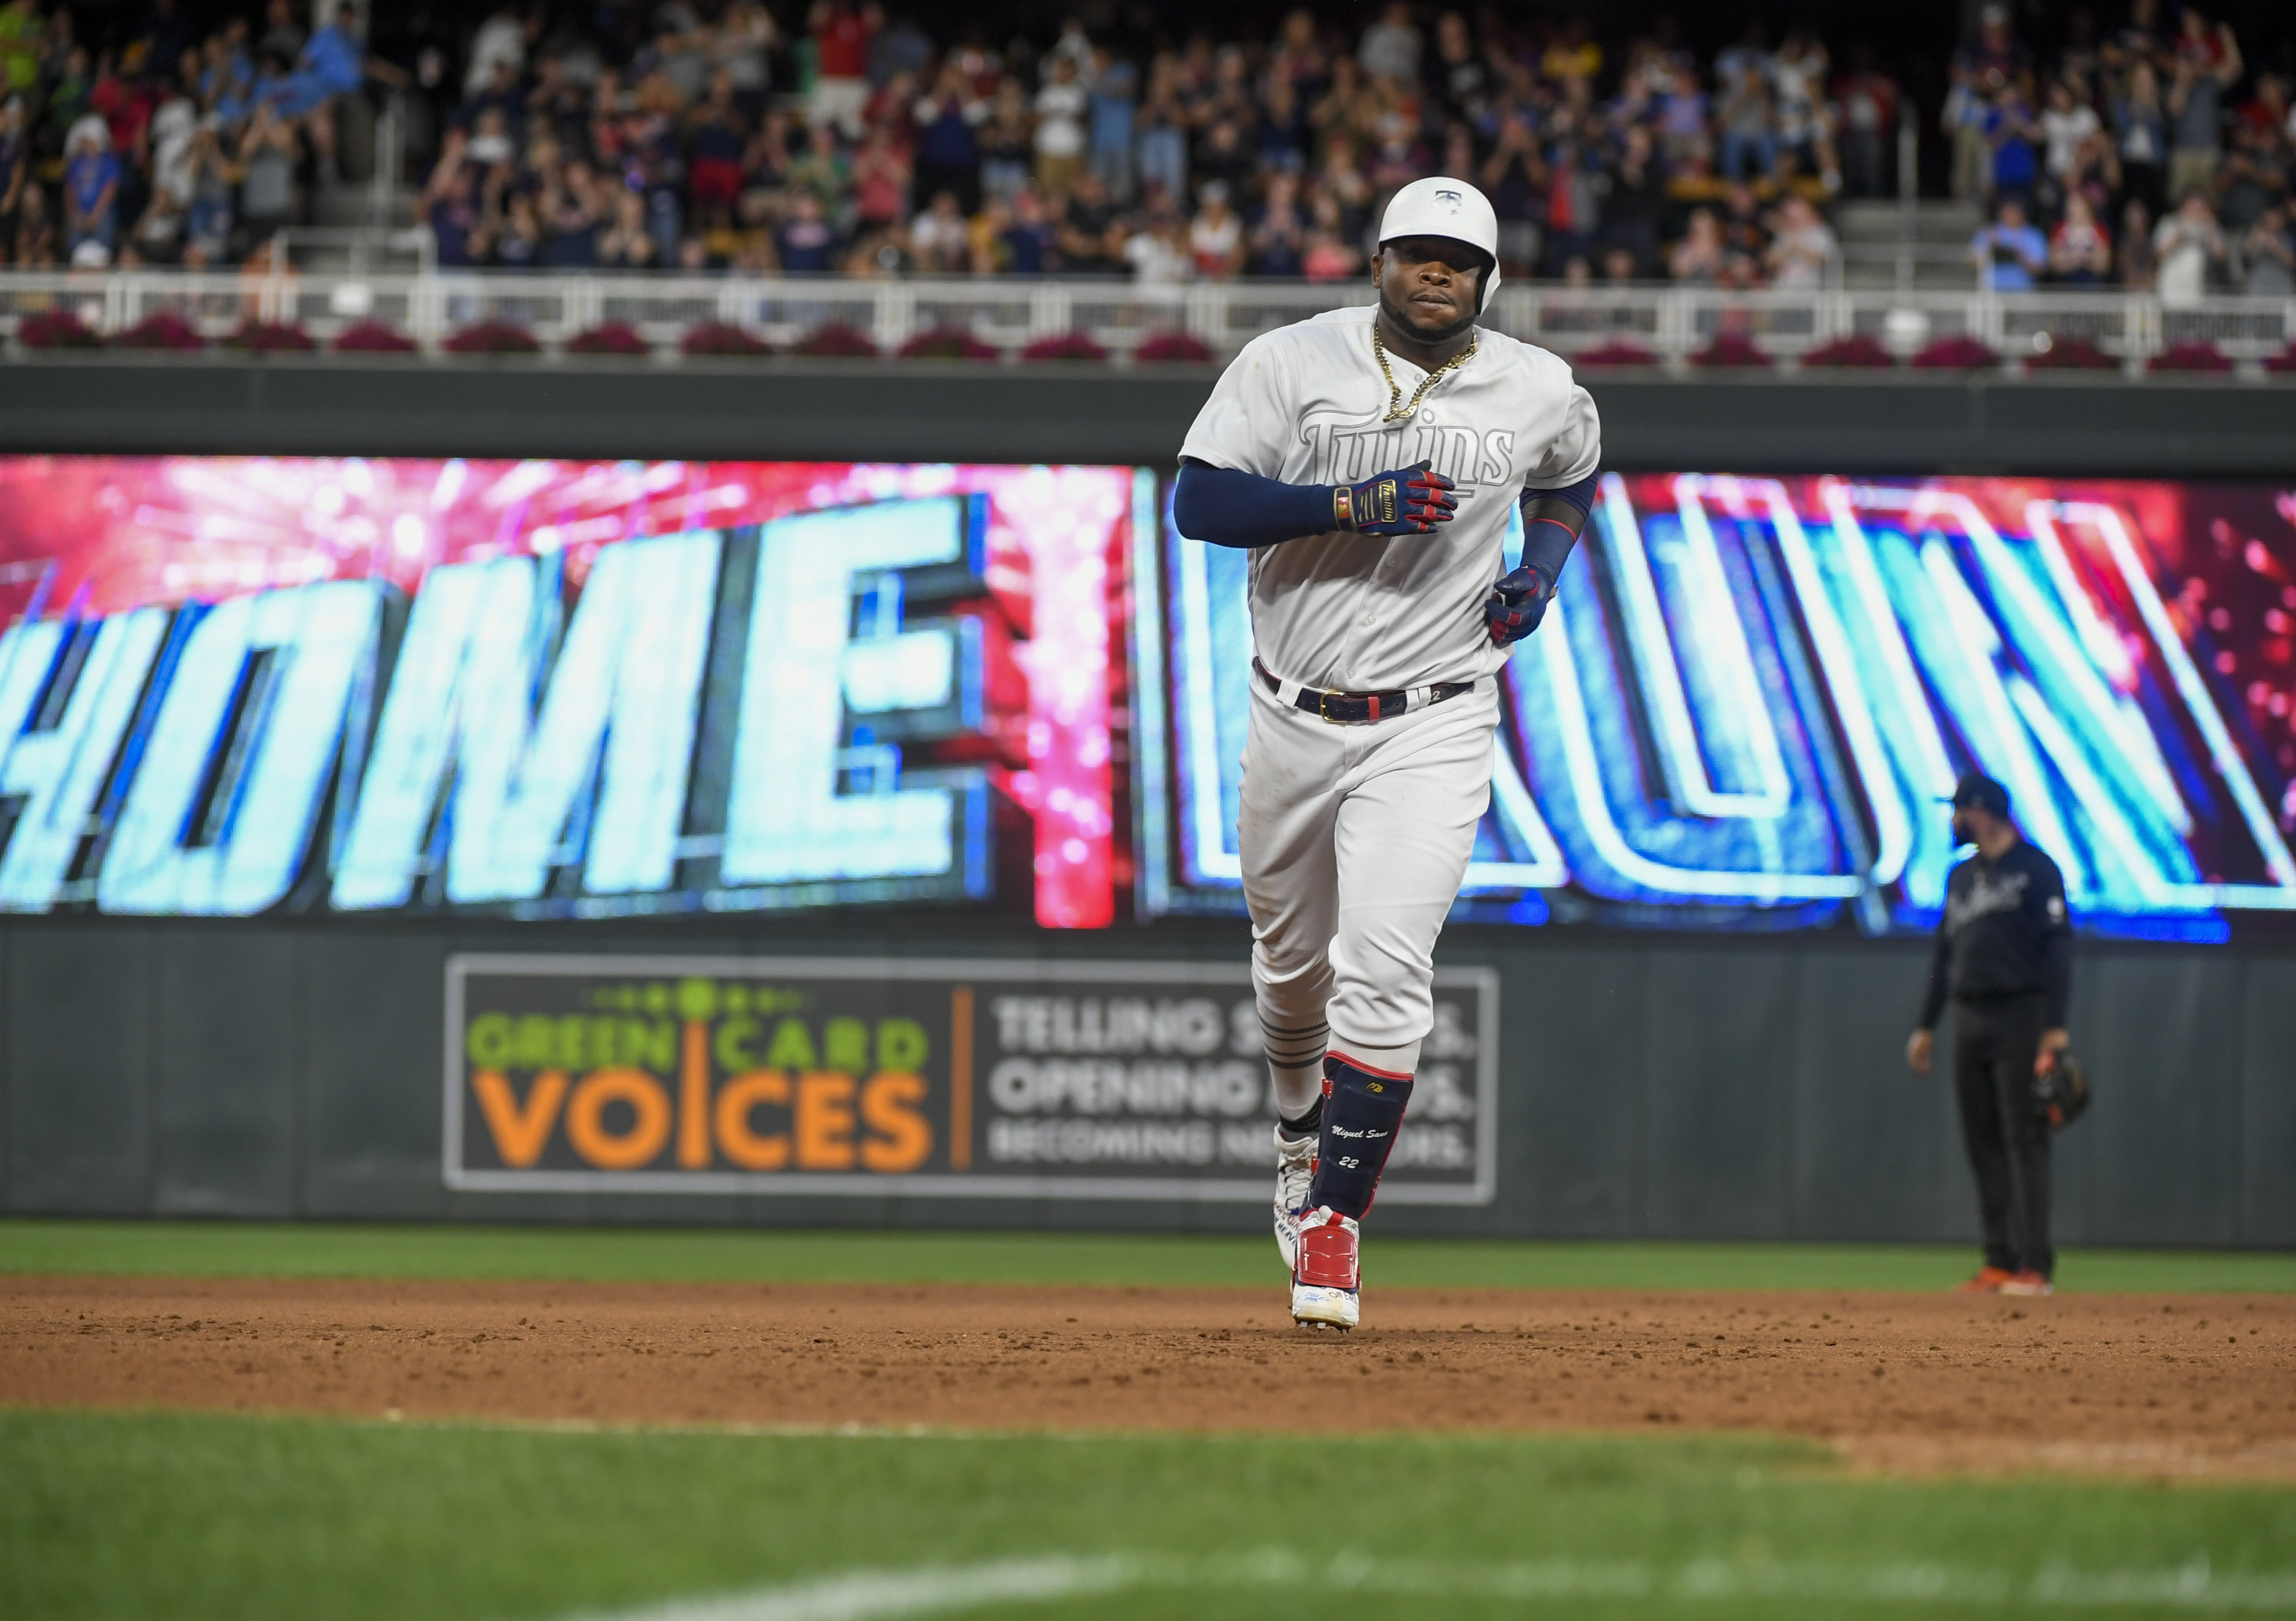 Sano and Cave homer again, Twins overcome Tigers 8-5